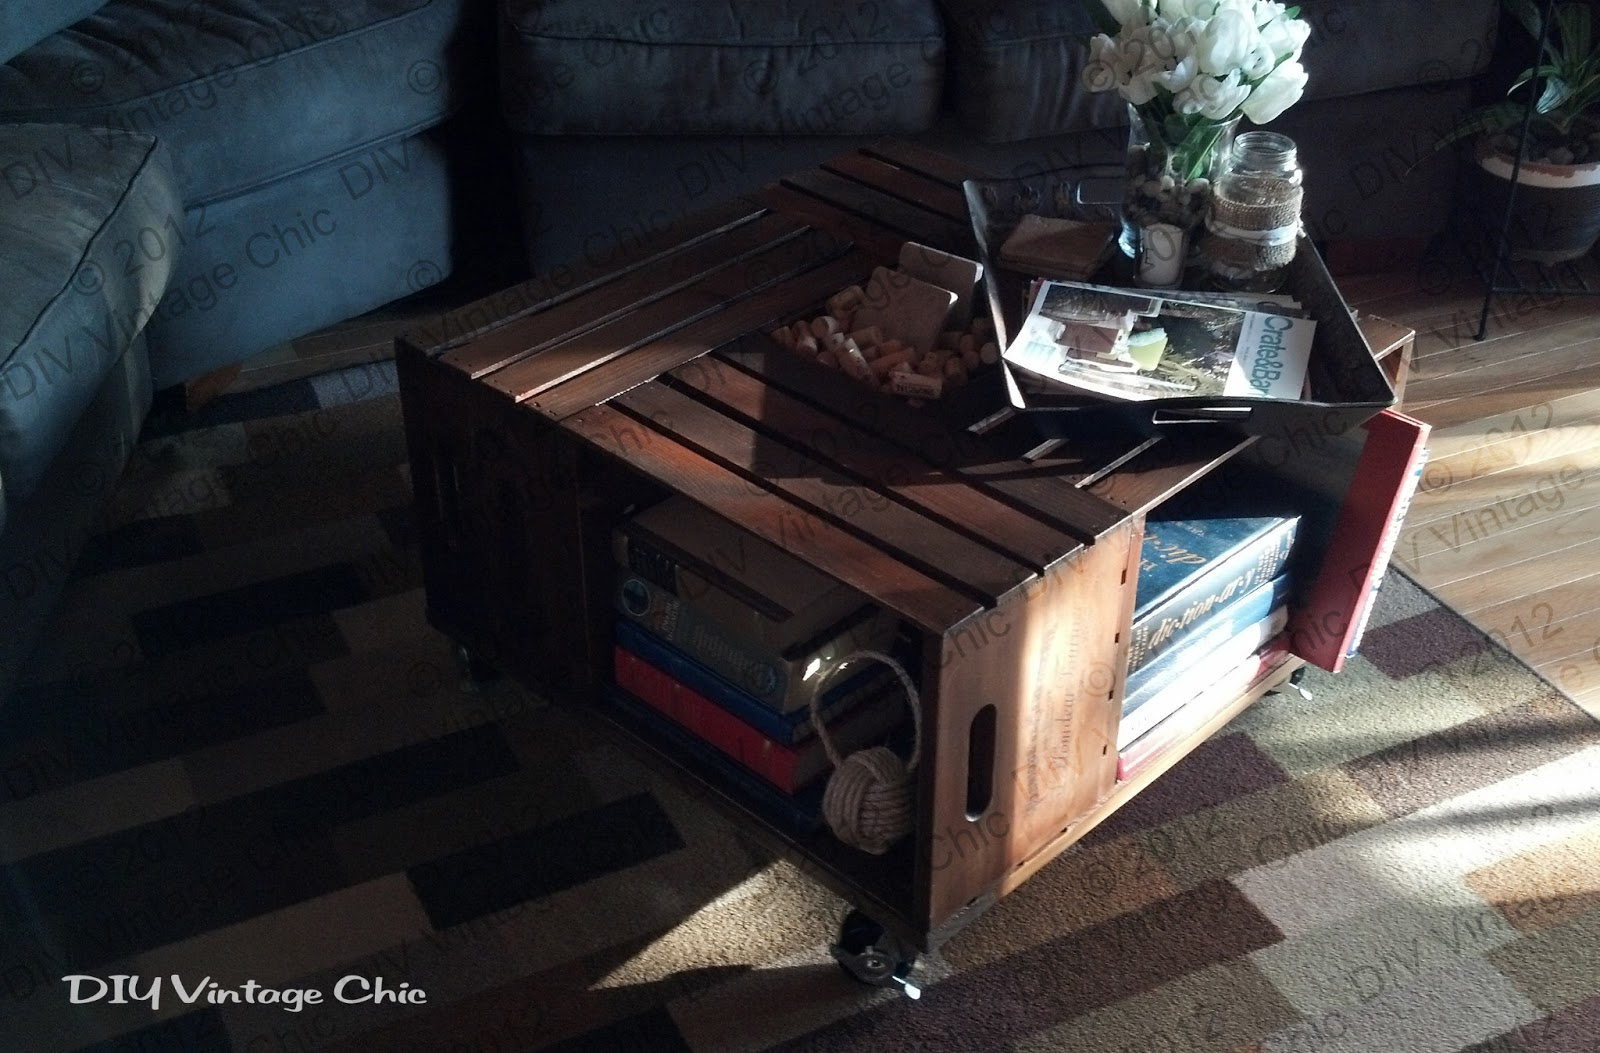 Diy vintage chic vintage wine crate coffee table for Where can i find old wine crates